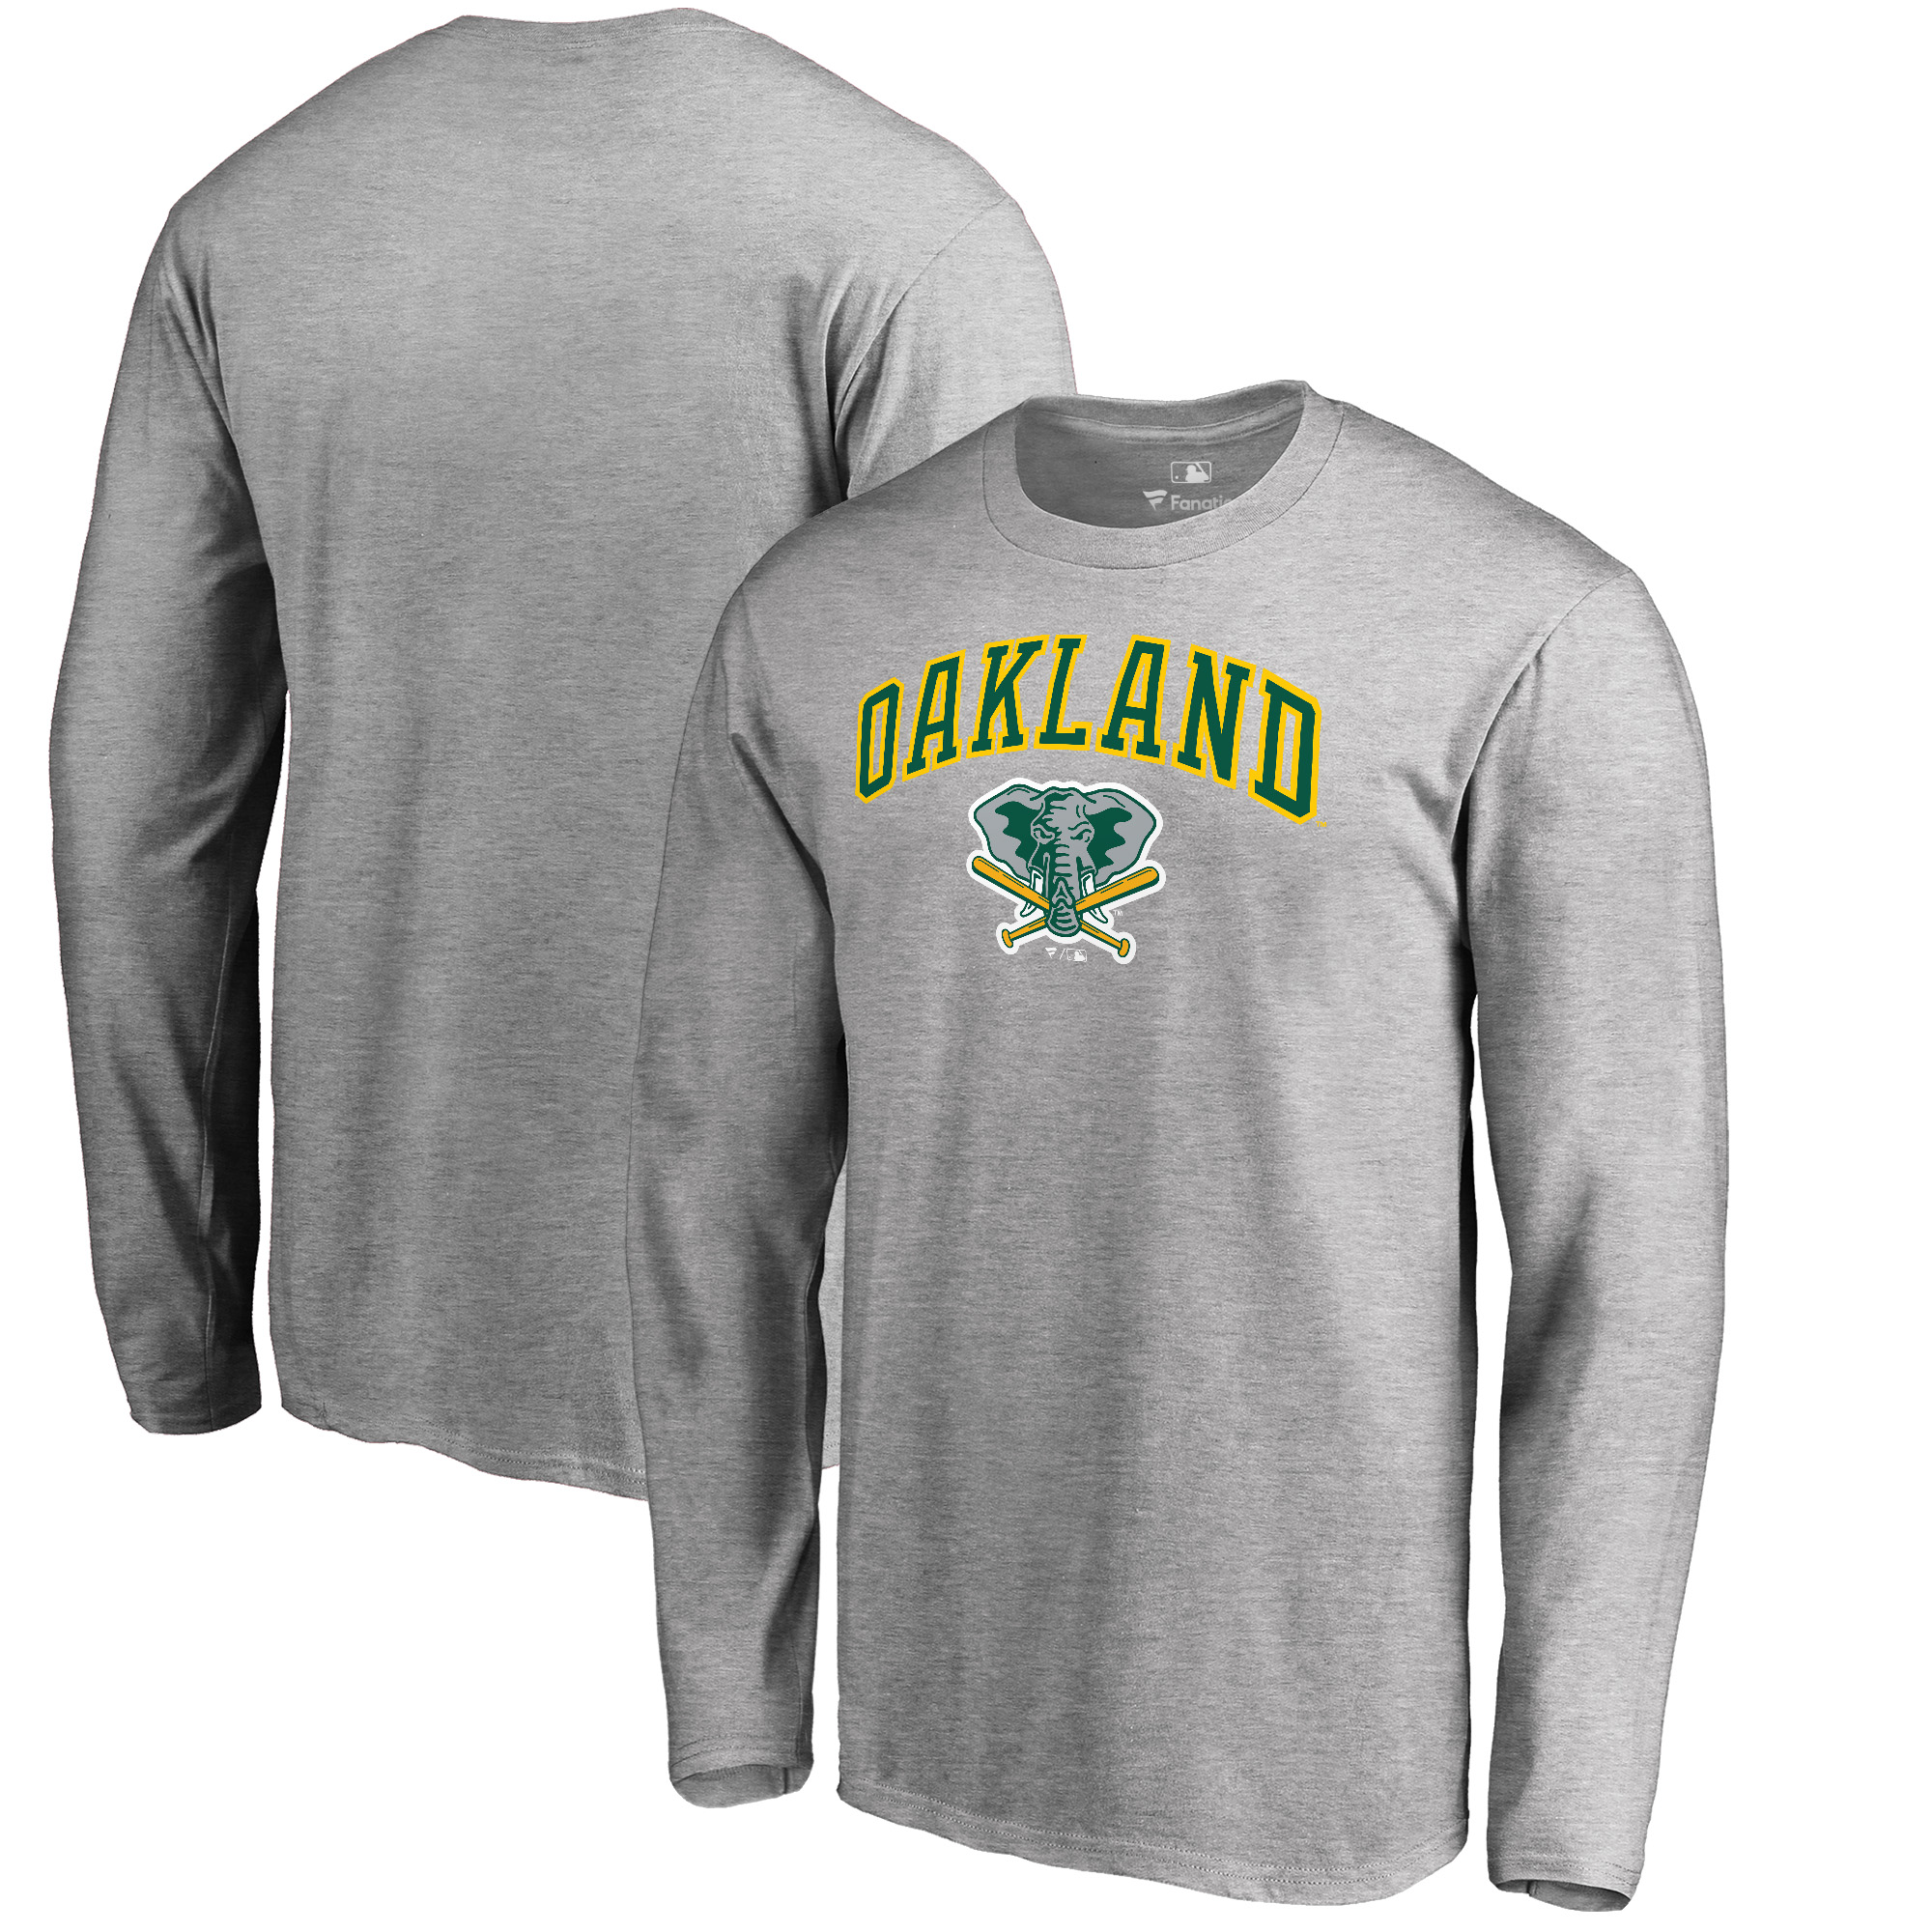 Oakland Athletics Fanatics Branded Big & Tall Cooperstown Collection Wahconah Long Sleeve T-Shirt - Heathered Gray